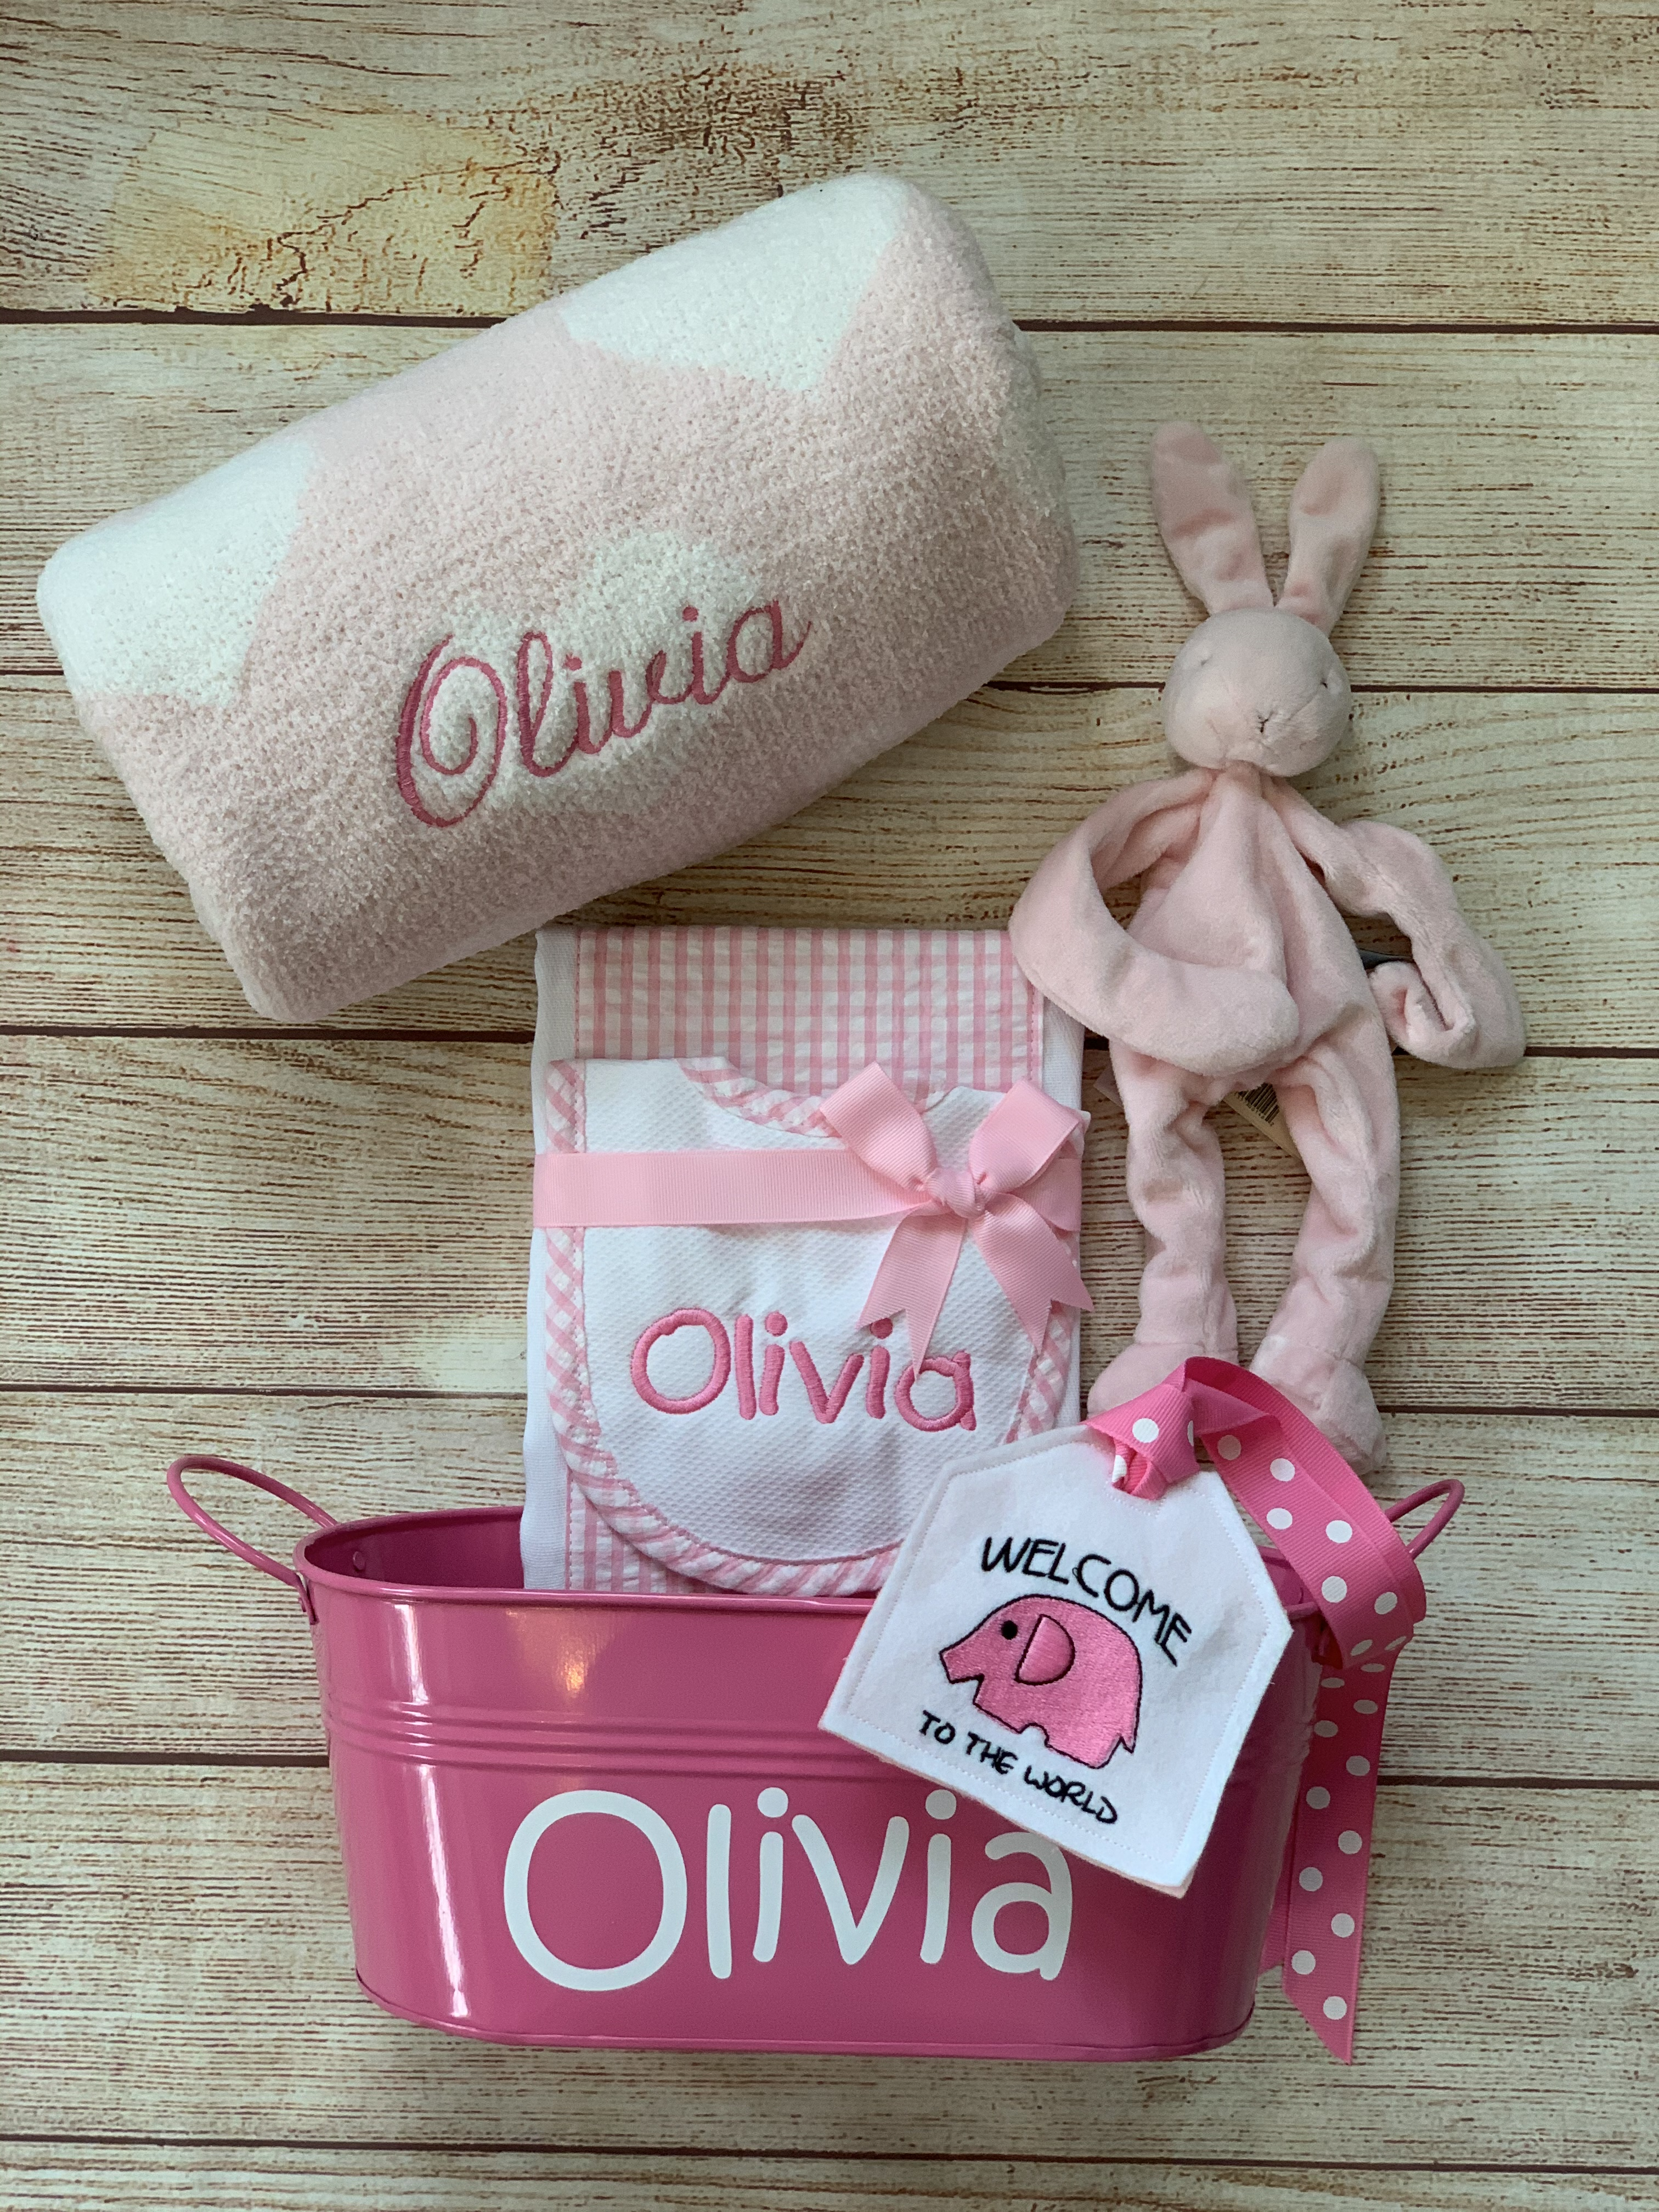 Make gifting spectacular...add a bib and burp set, a binkie buddy, a gift tin and tag! We wrap and Ship at Wicked Stitches Gifts.